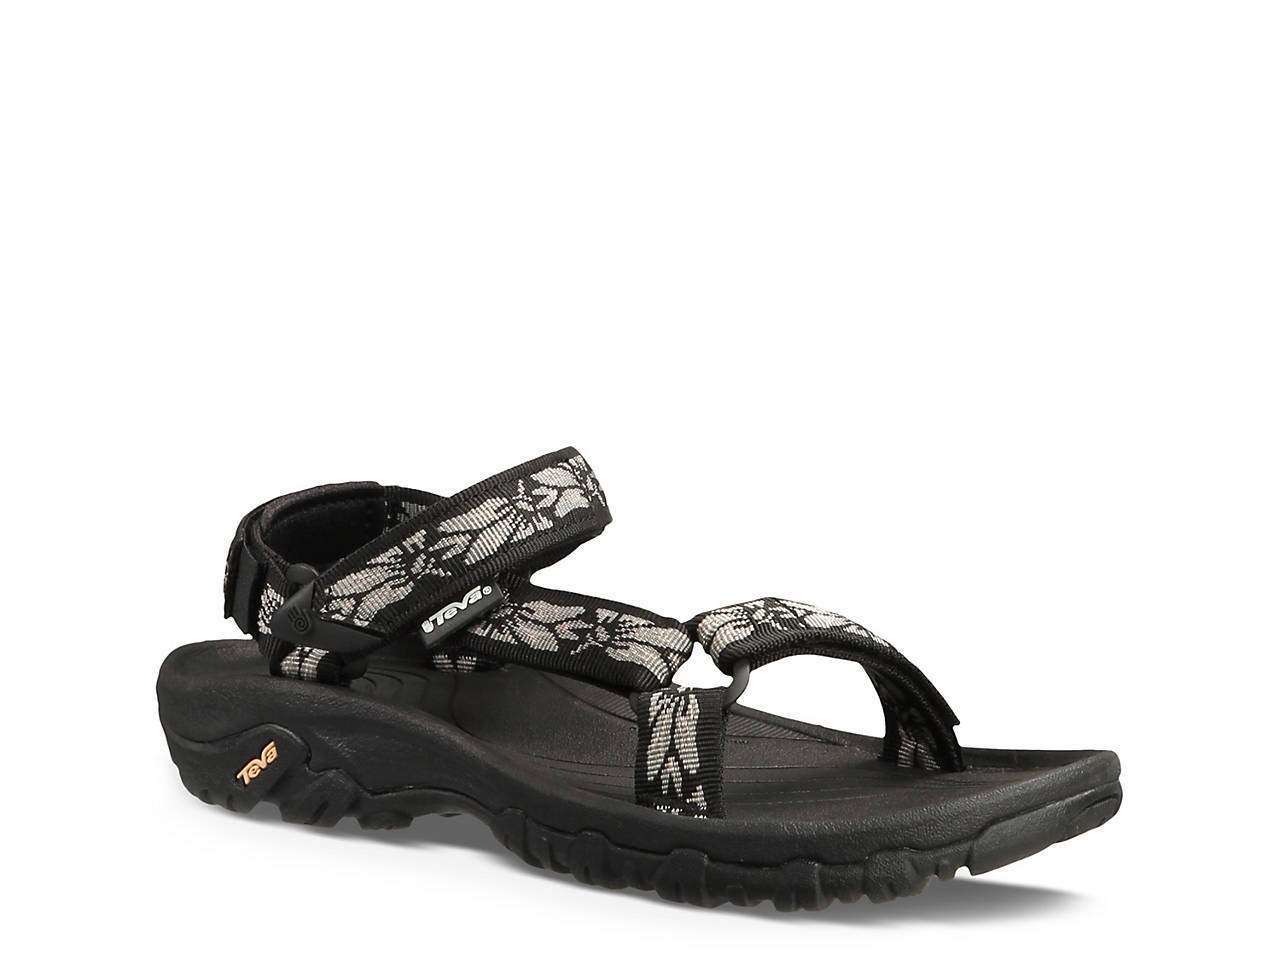 4a7a90e74 Teva Hurricane XLT Sport Sandal Women s Shoes